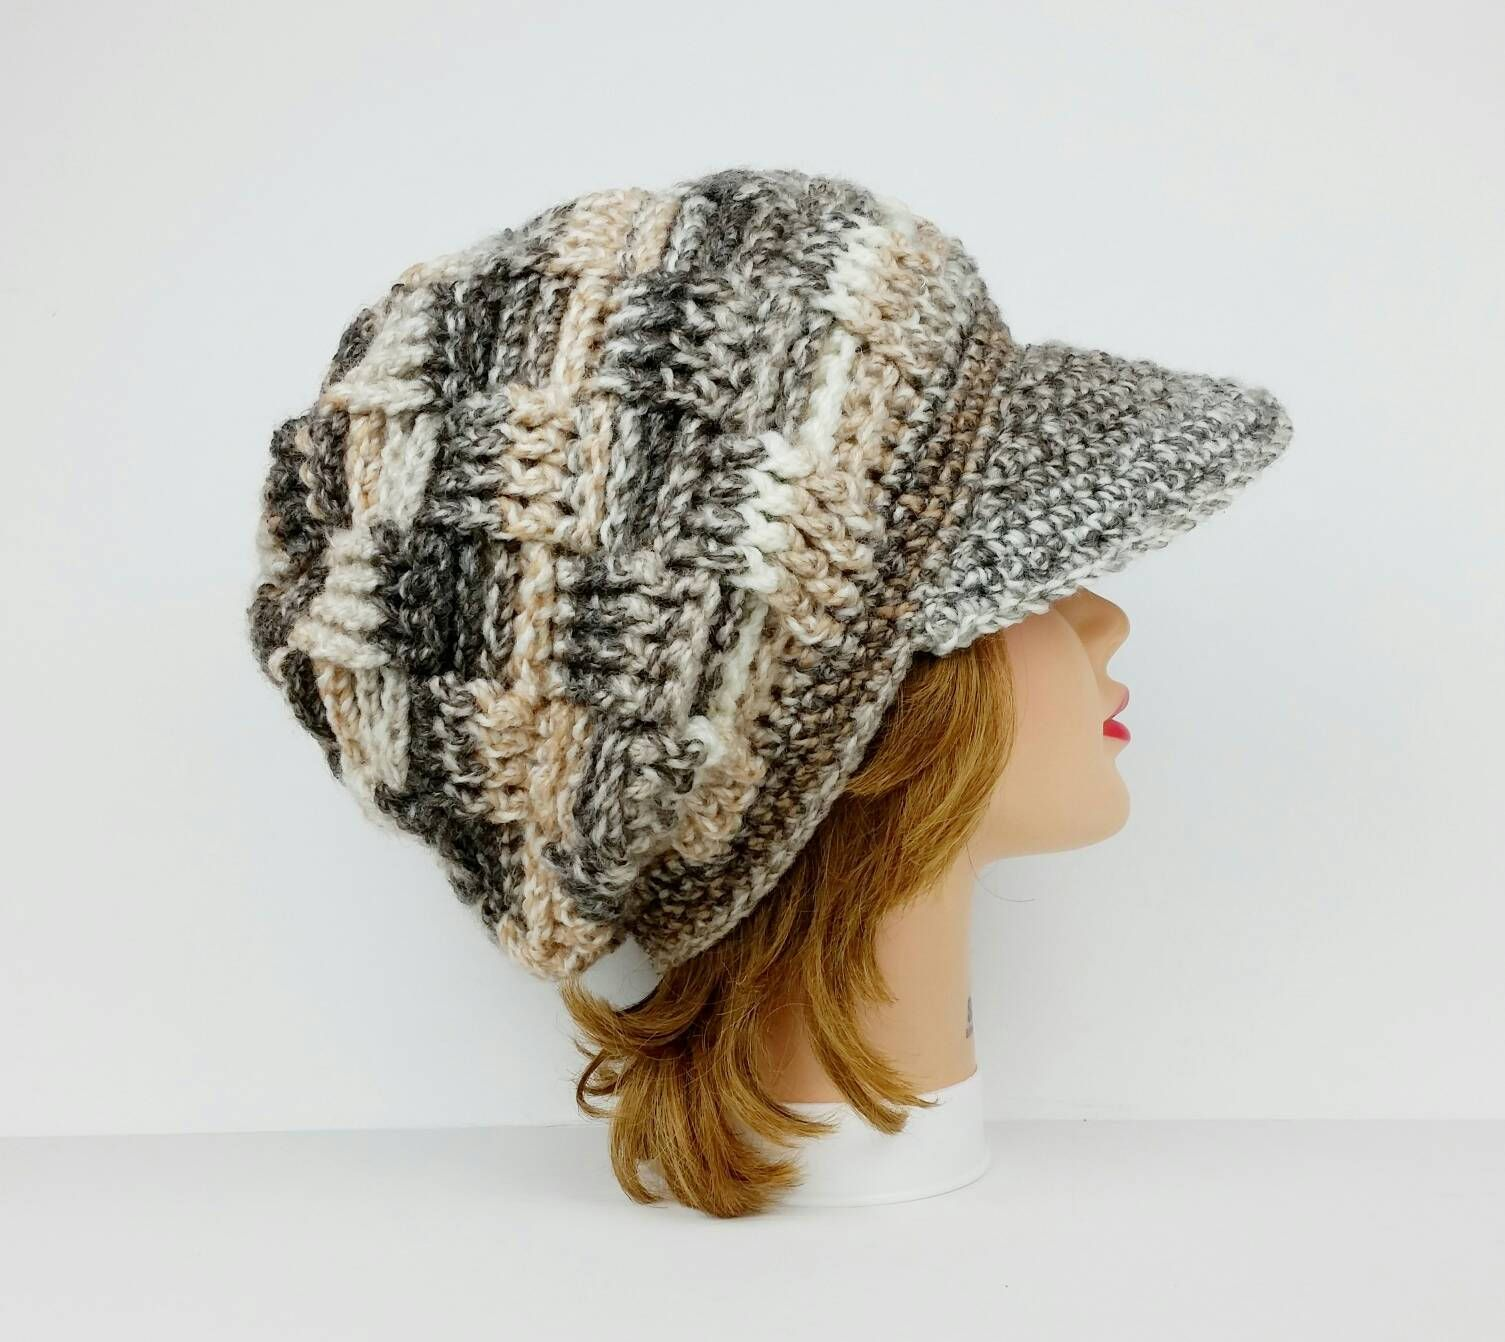 59b78214091 Women s Newsboy Hat